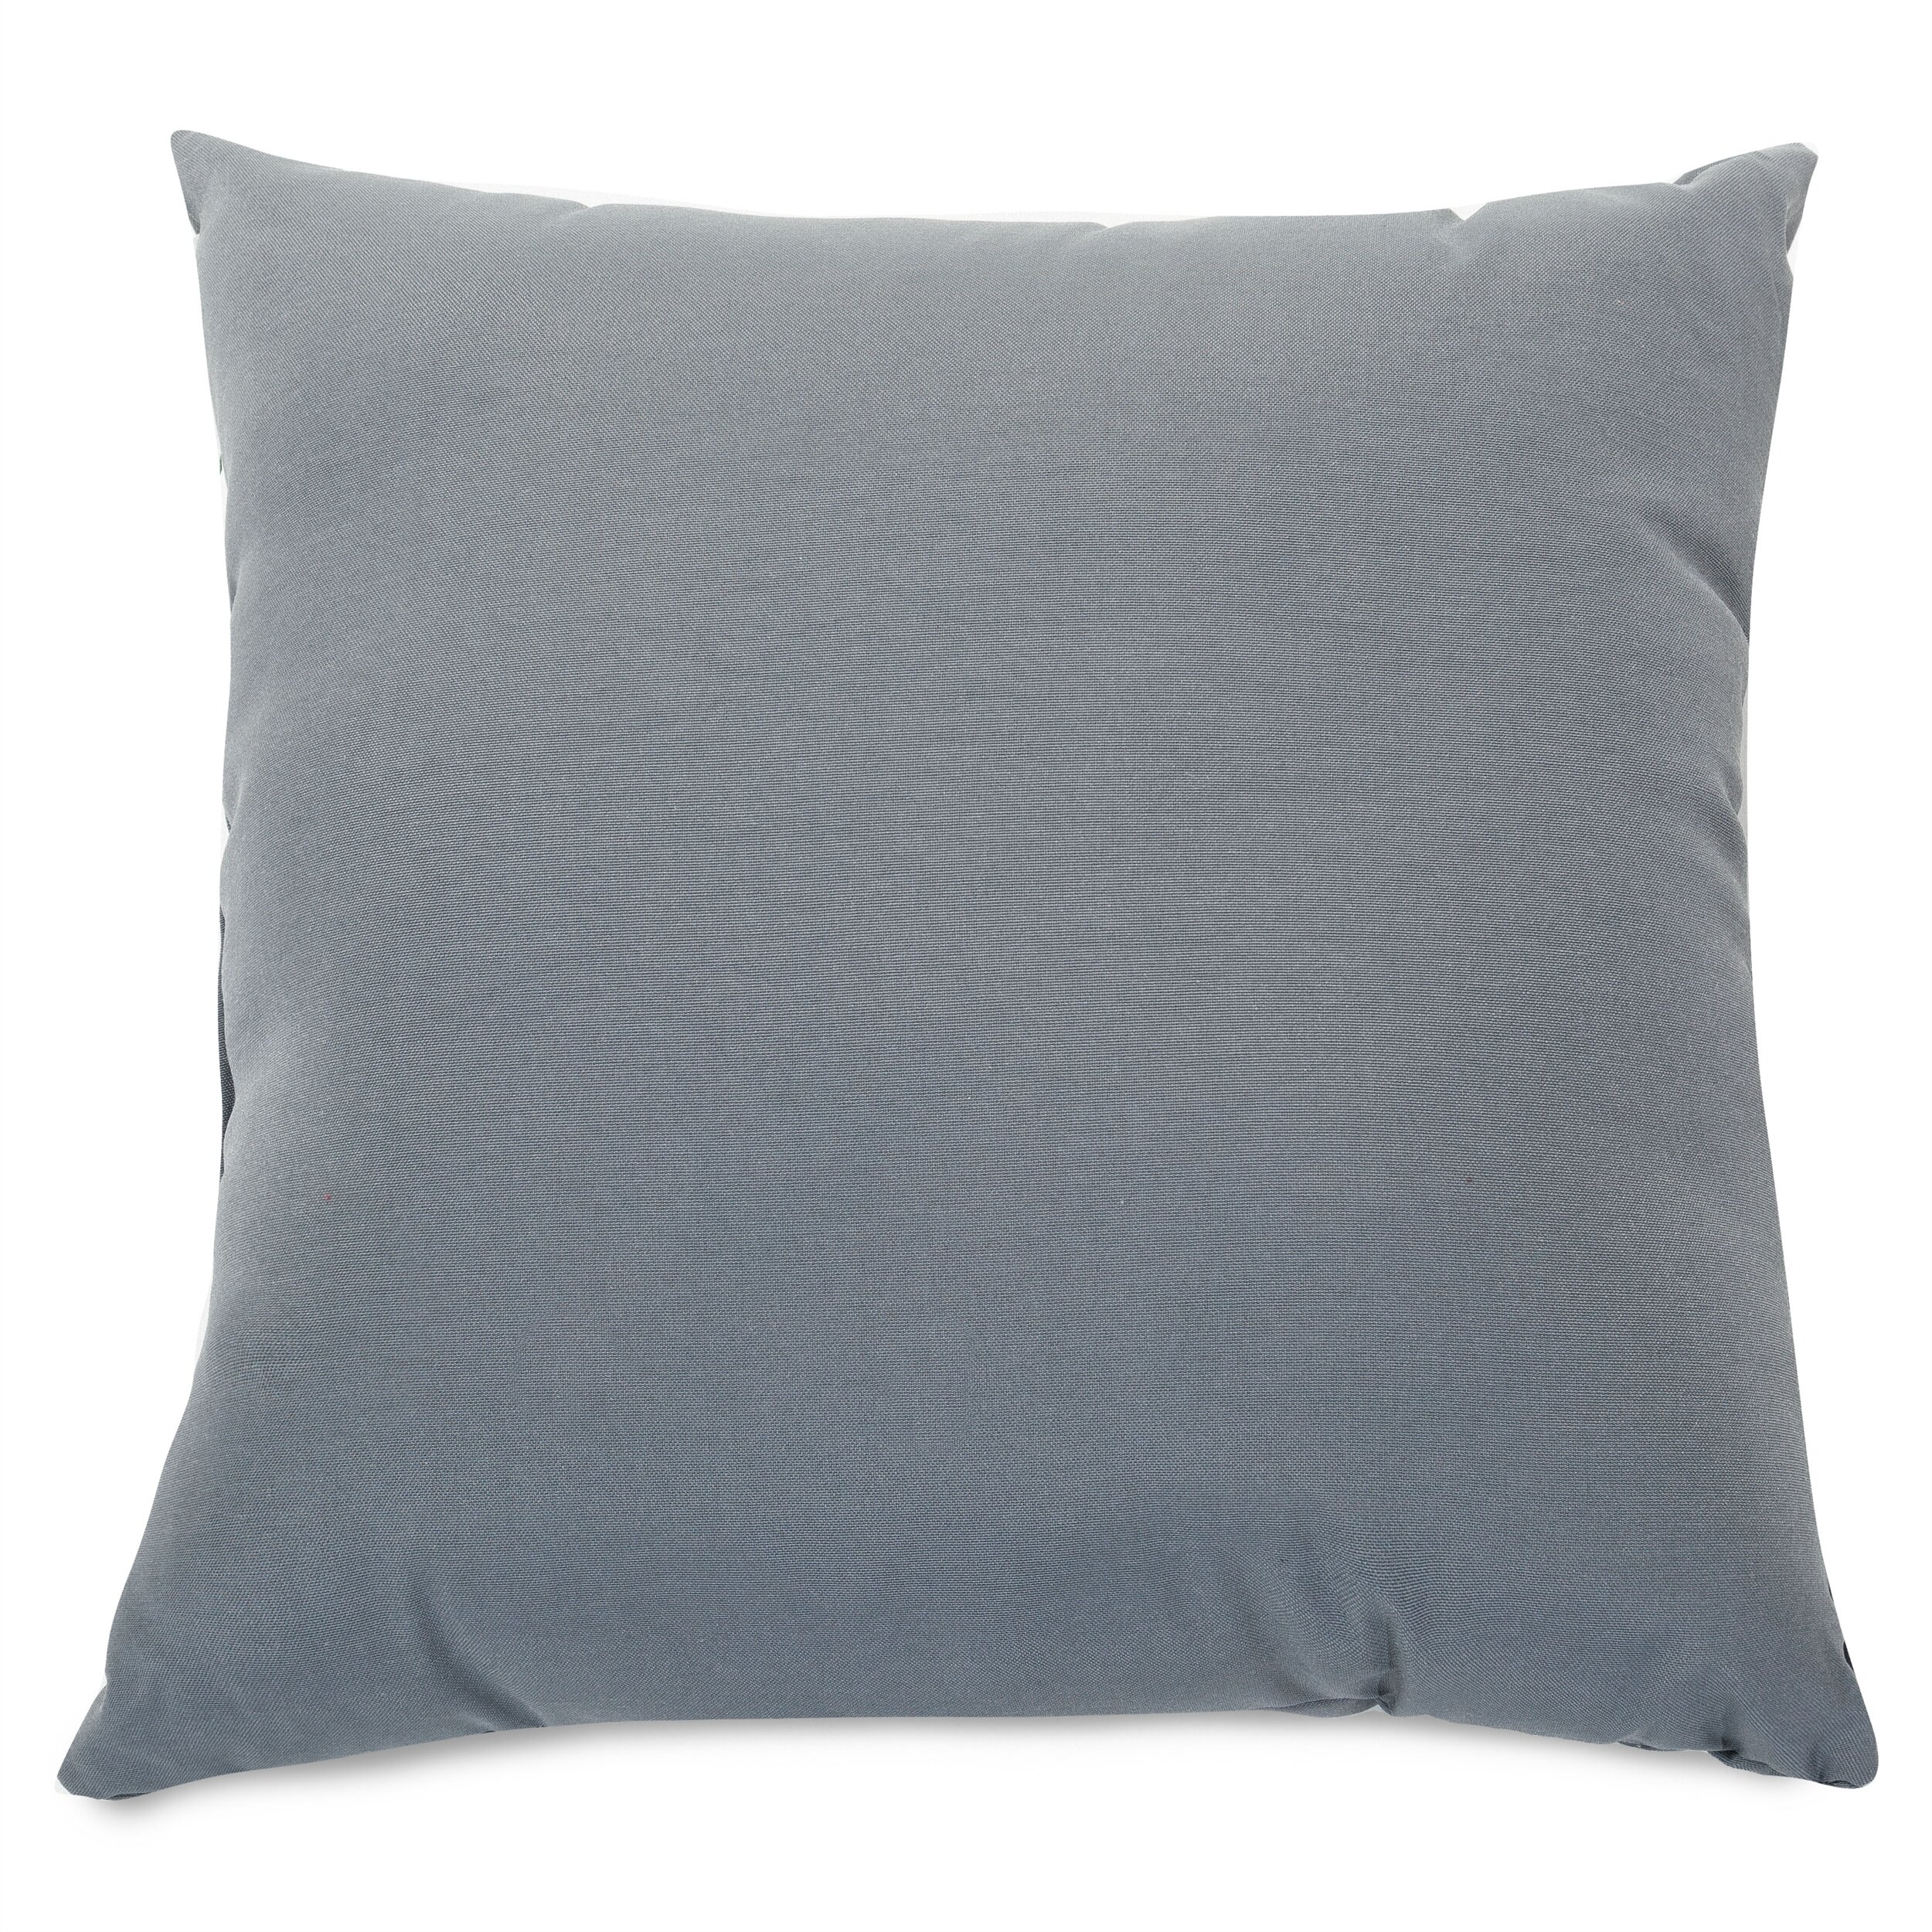 Throw Pillows Home Goods : Majestic Home Goods Solid Throw Pillow Wayfair